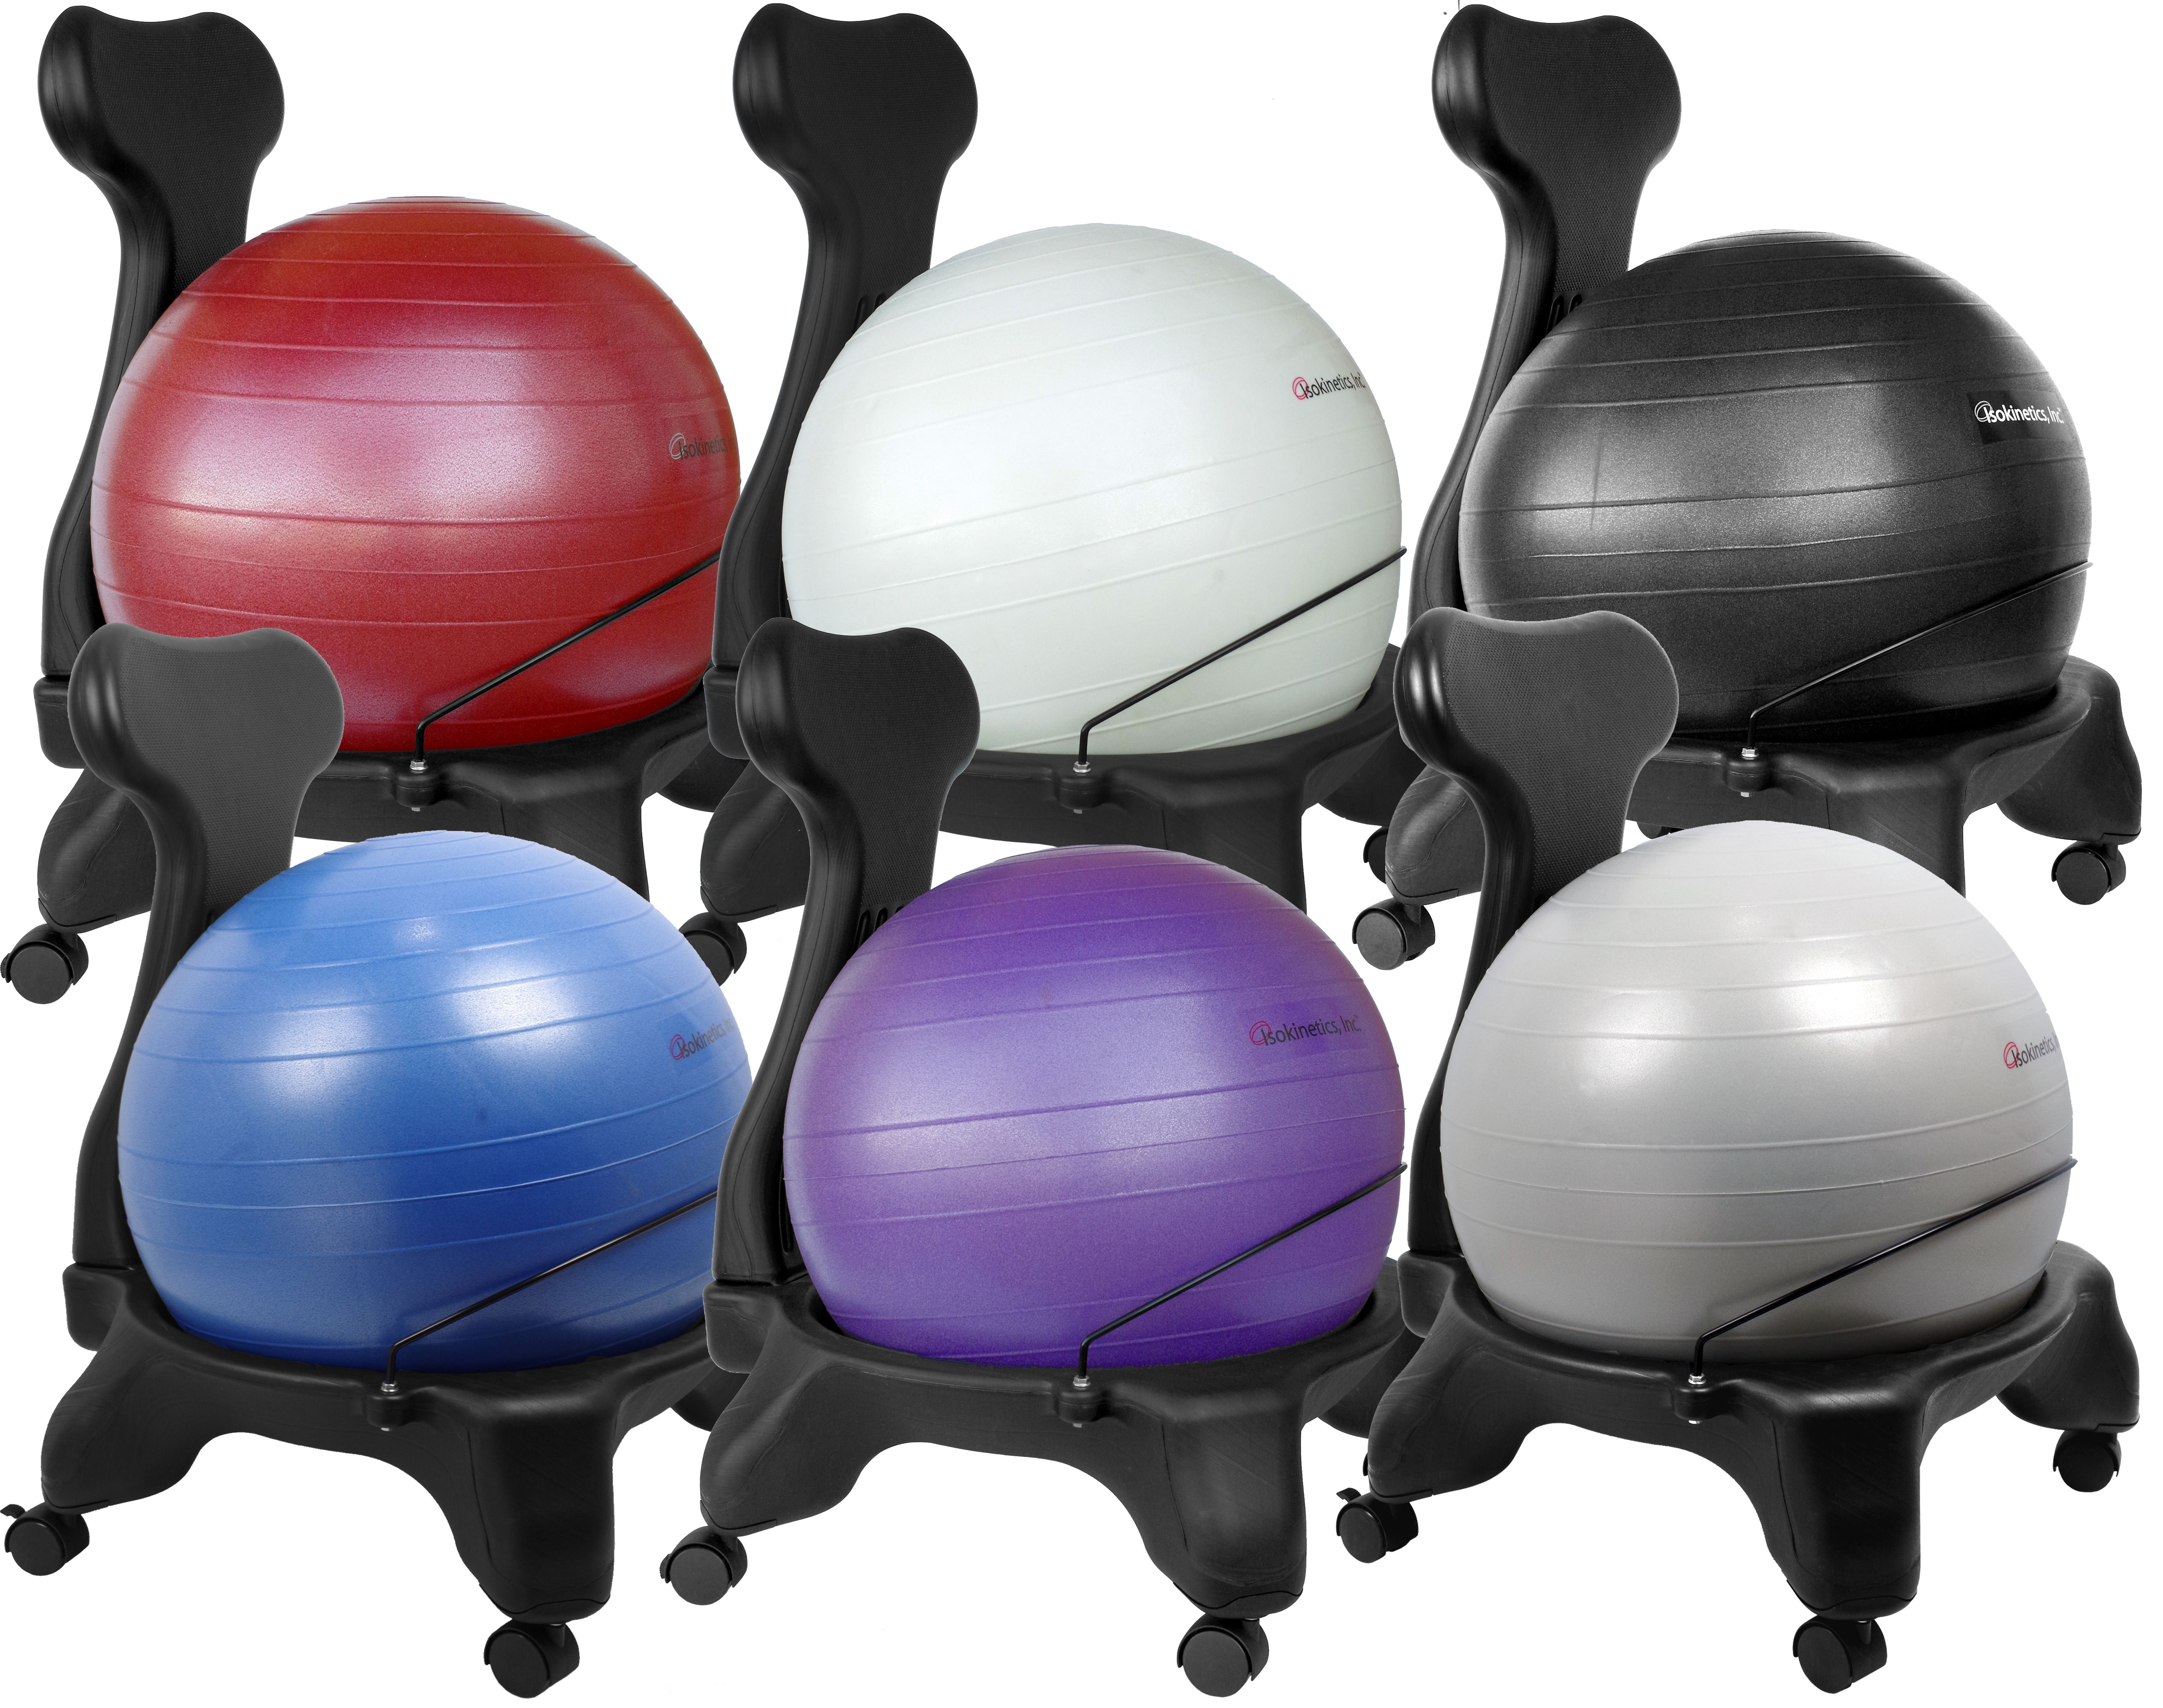 Inc.™ Balance/Exercise Ball Chair Exclusive